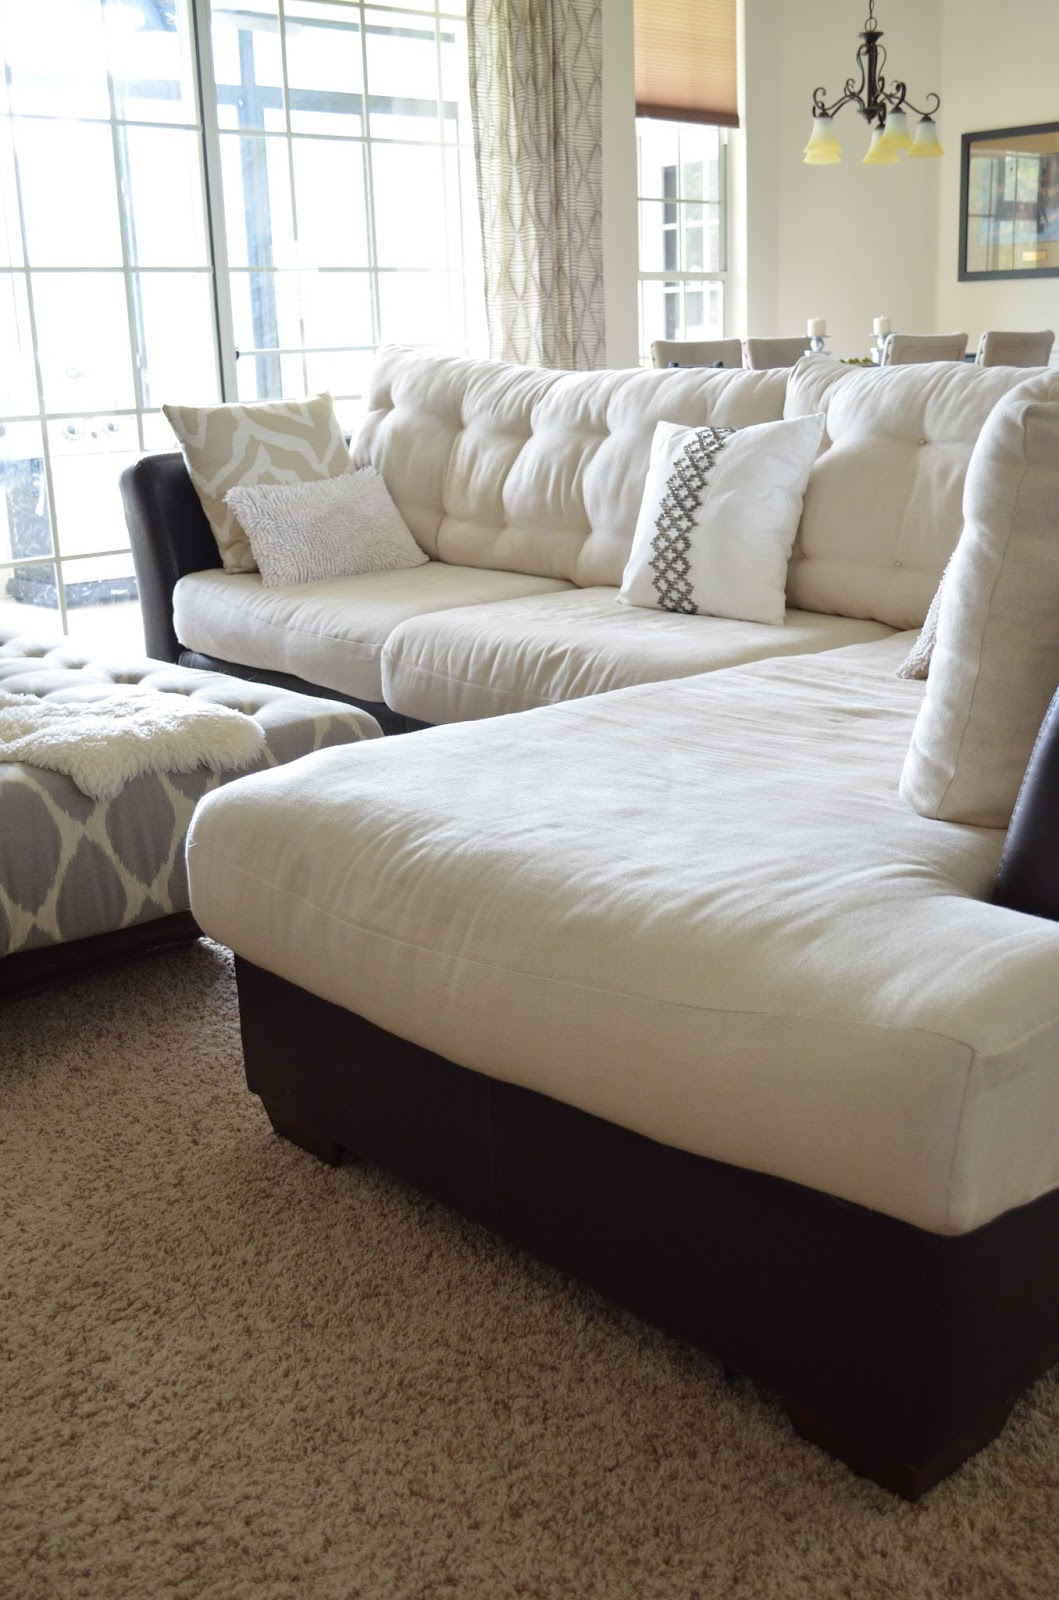 How To Make Sofa Cushions Harder Modern Fabric Sofas Factory Inside Out Design Do Buttonless Tufting On Couch